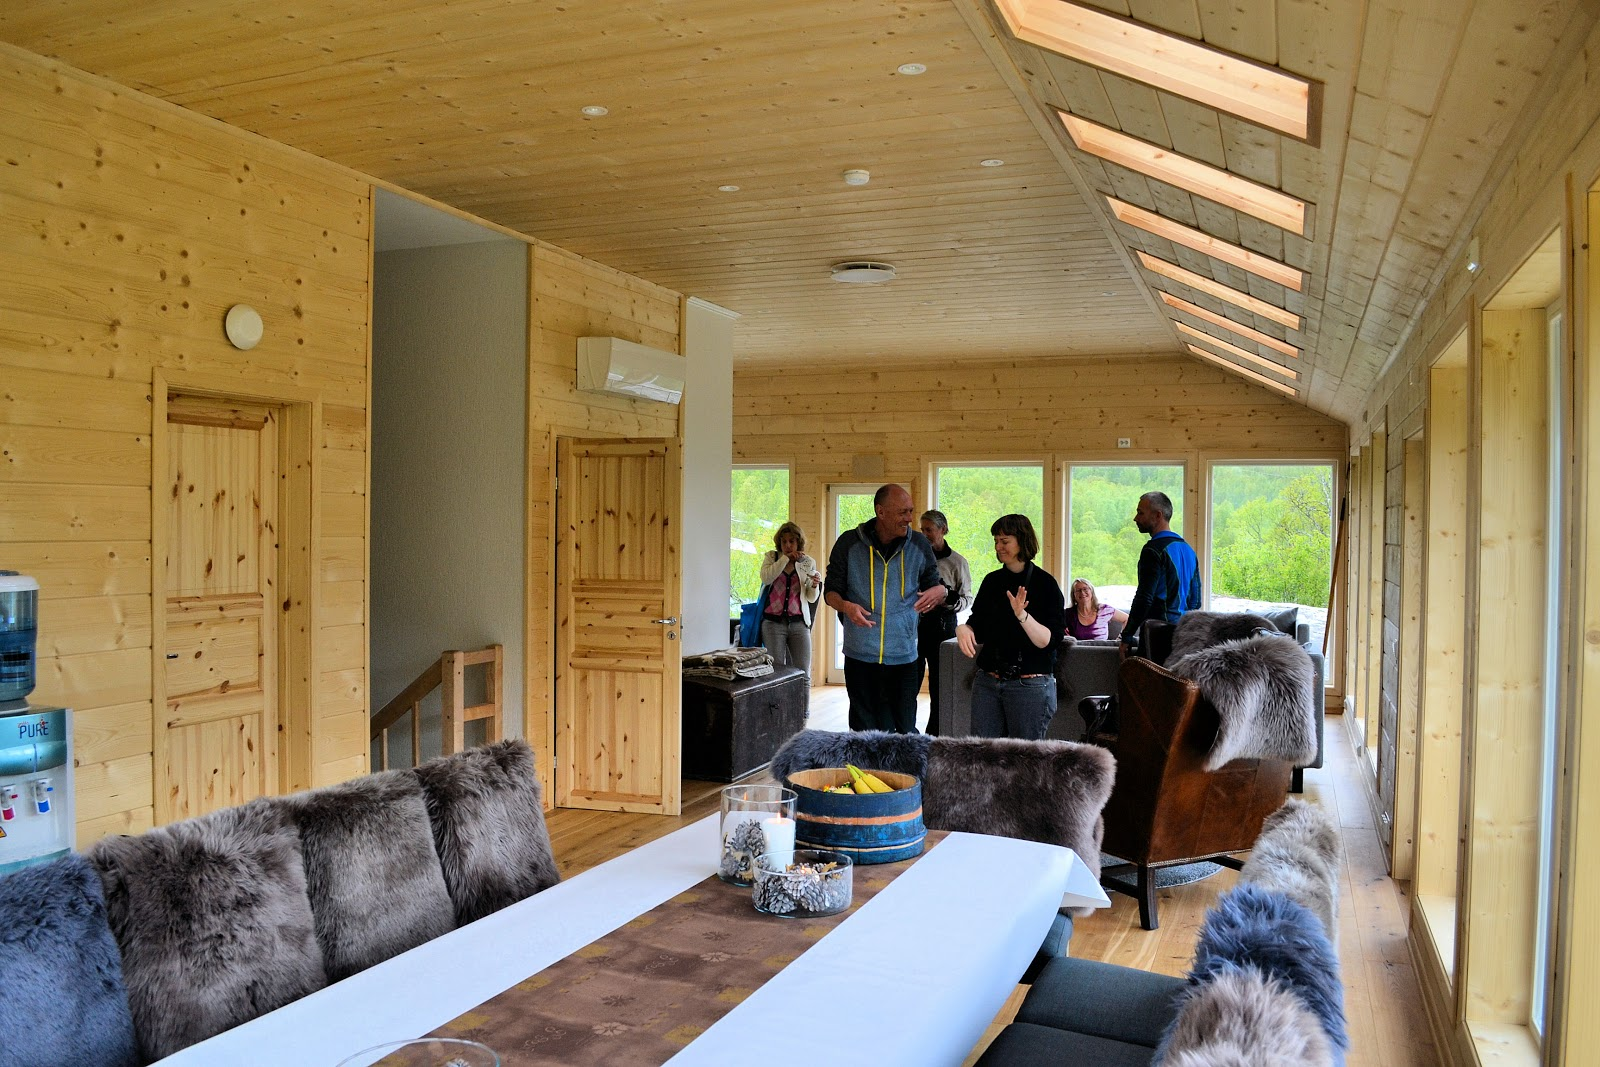 Interior of the Wolf Lodge inside the wolf enclosure. Bedrooms and full bath downstairs while the kitchen, dining and gathering areas are on the second level with floor-to-ceiling windows for peering out into the wilderness.